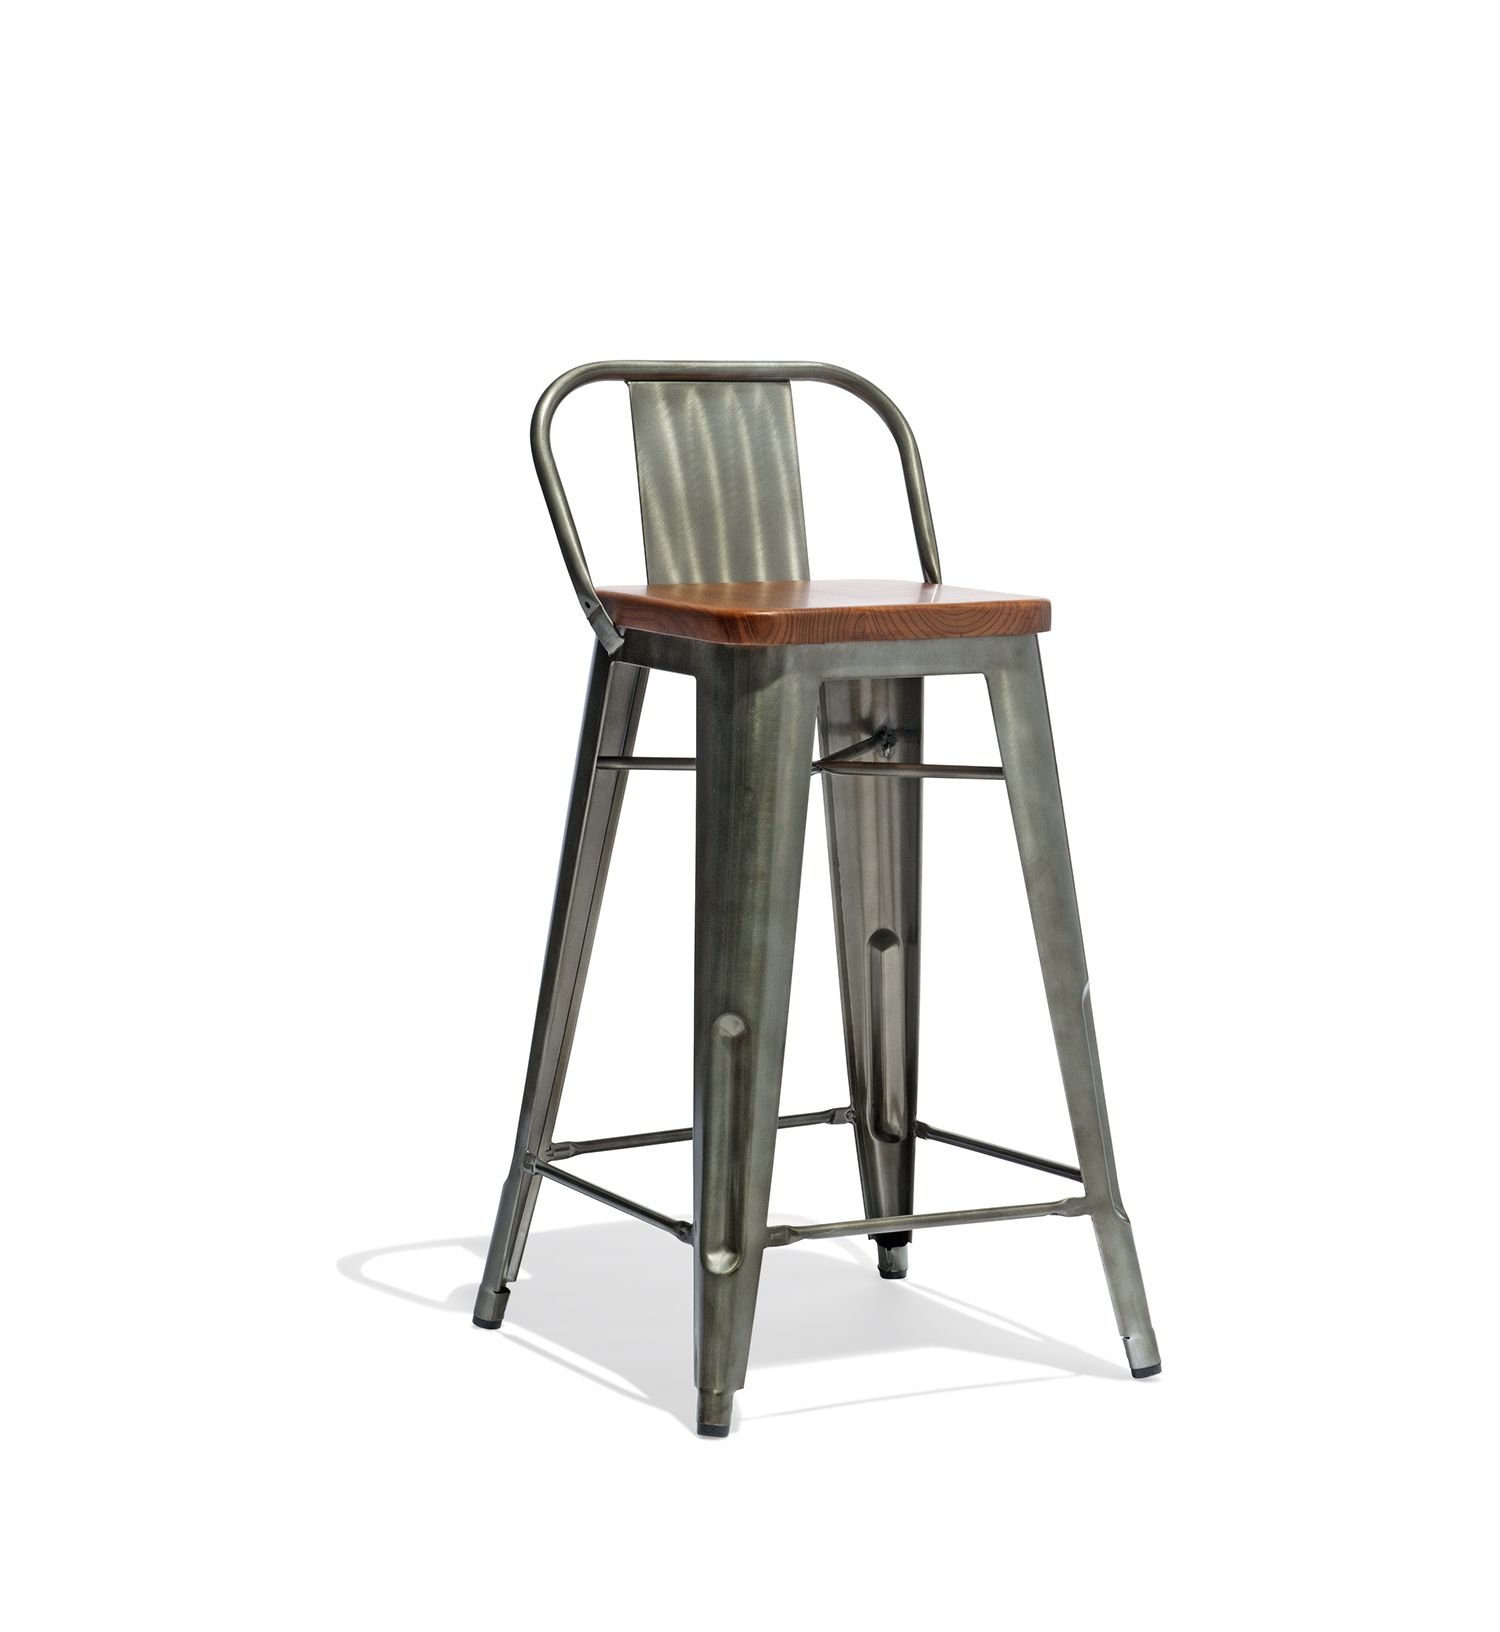 Low Back Counter Stool With A Wood Seat In 2020 Counter Stools